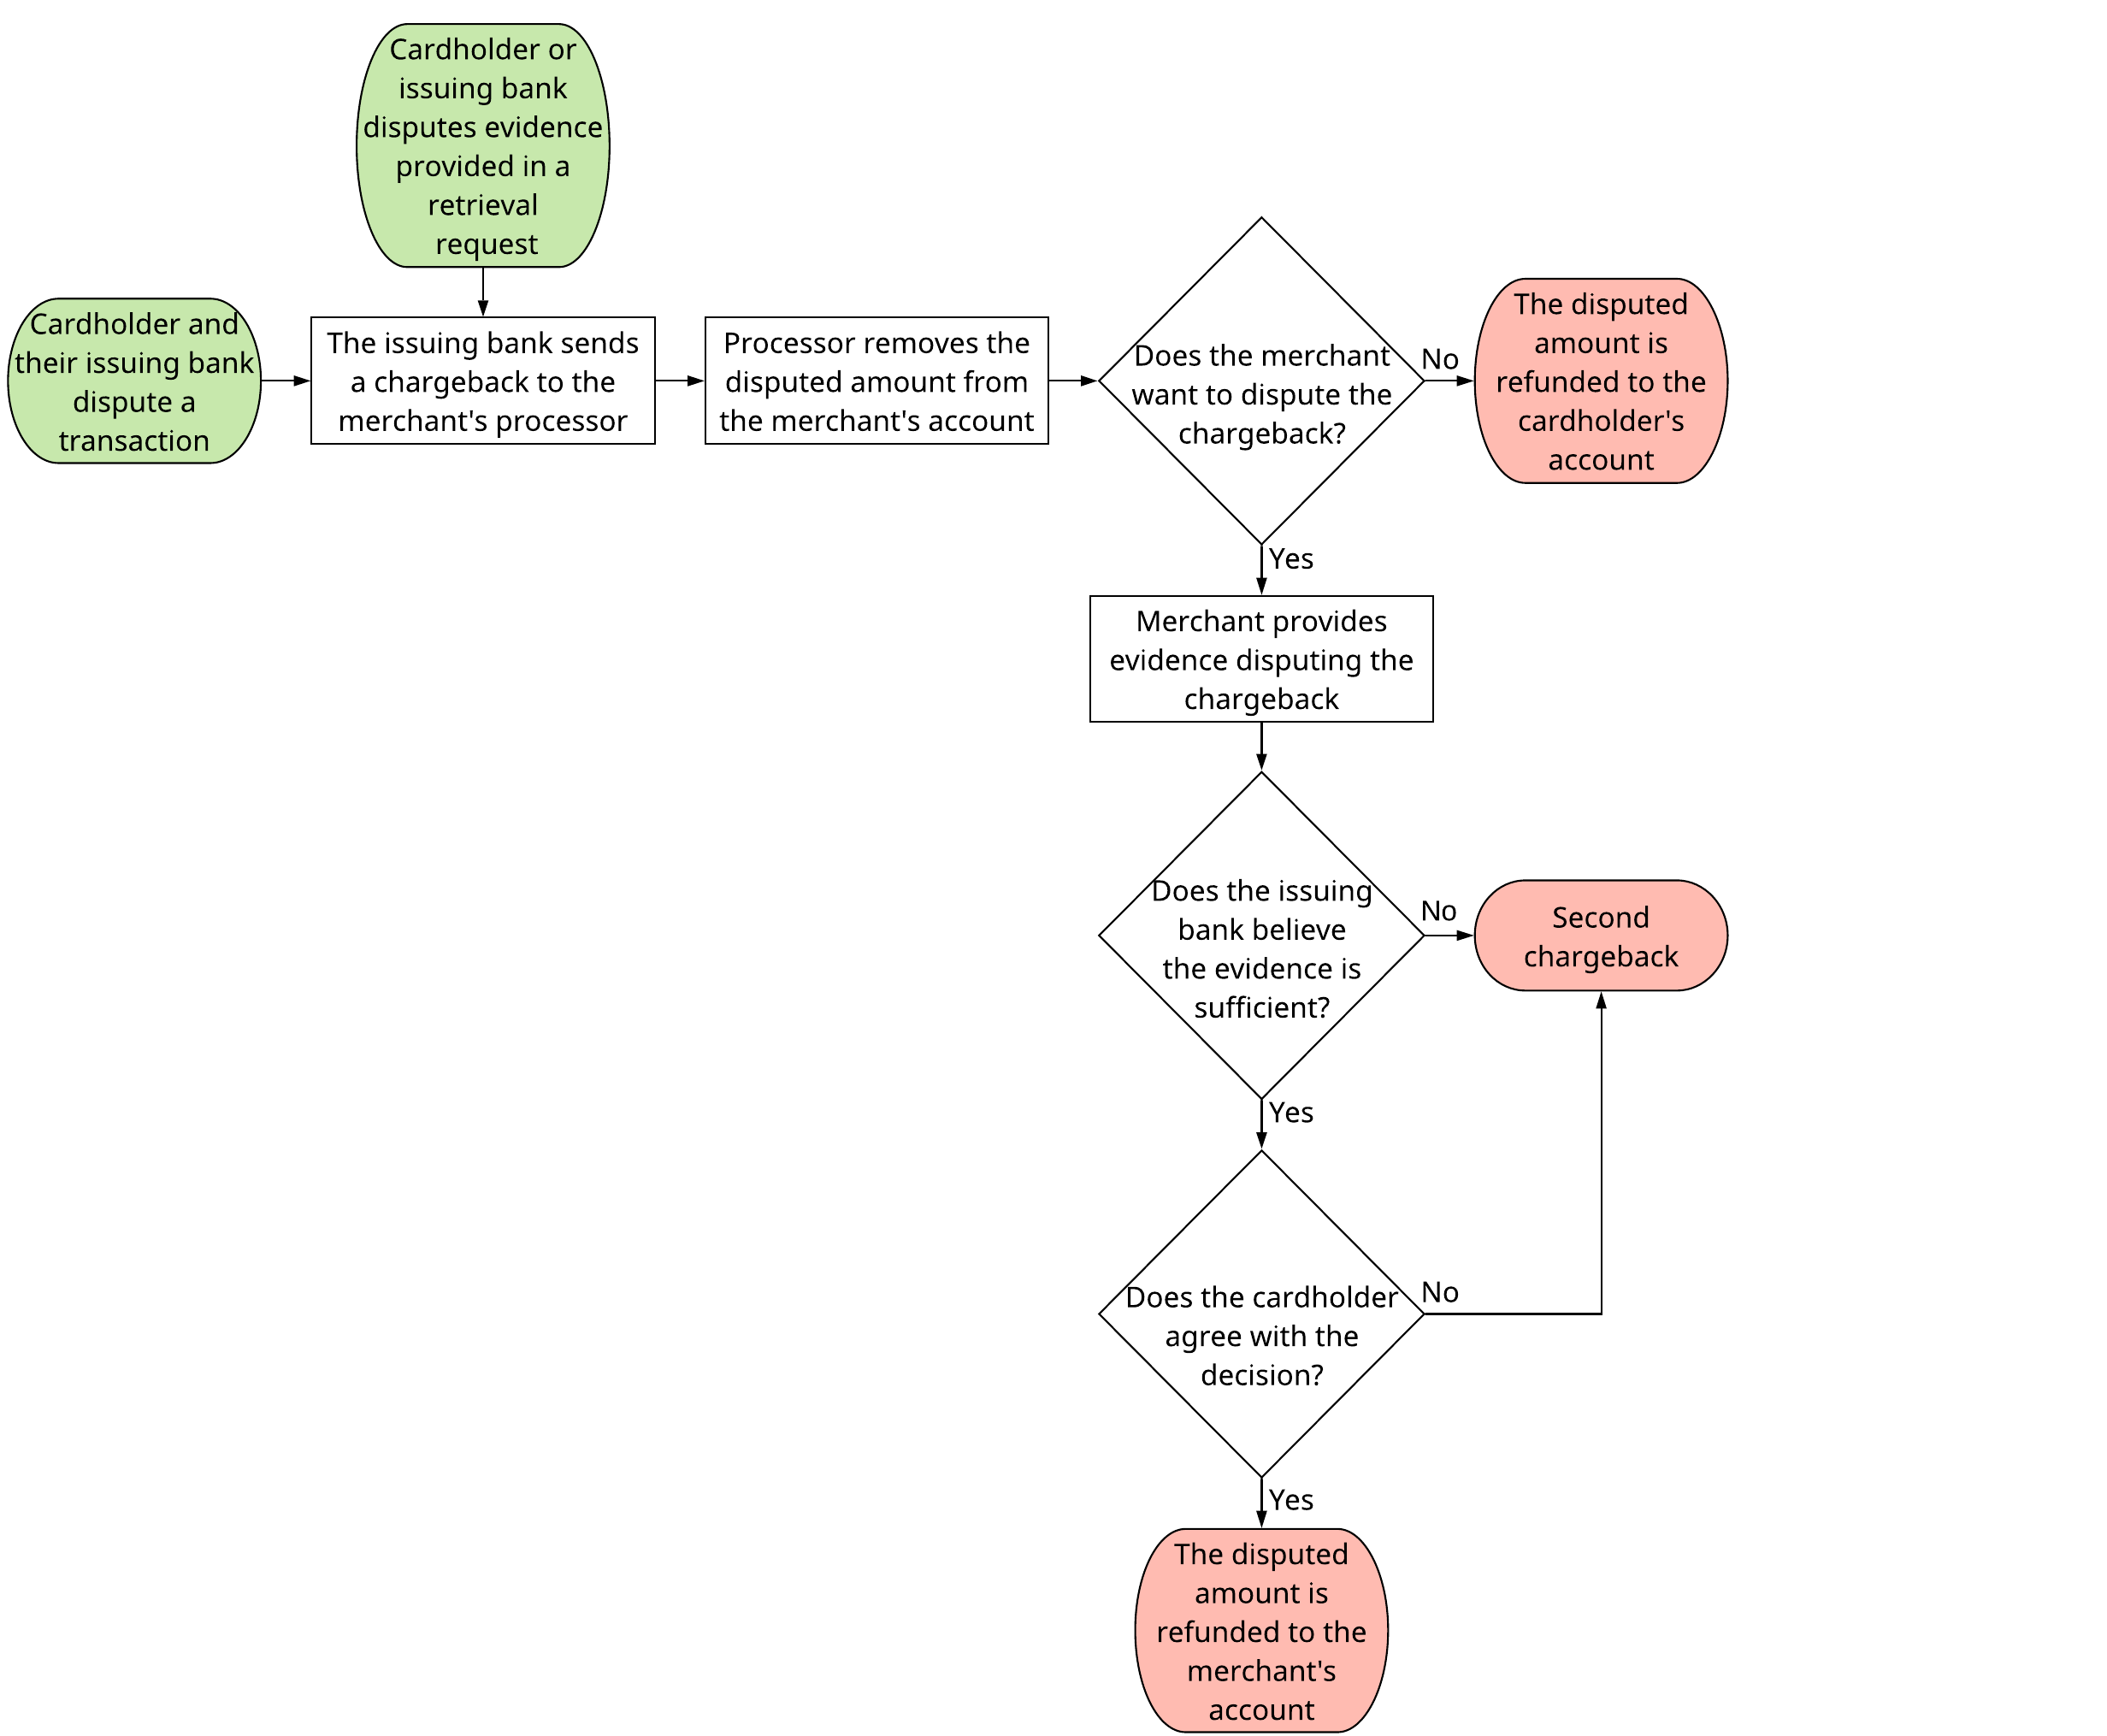 A flowchart that shows the stages of a first chargeback.